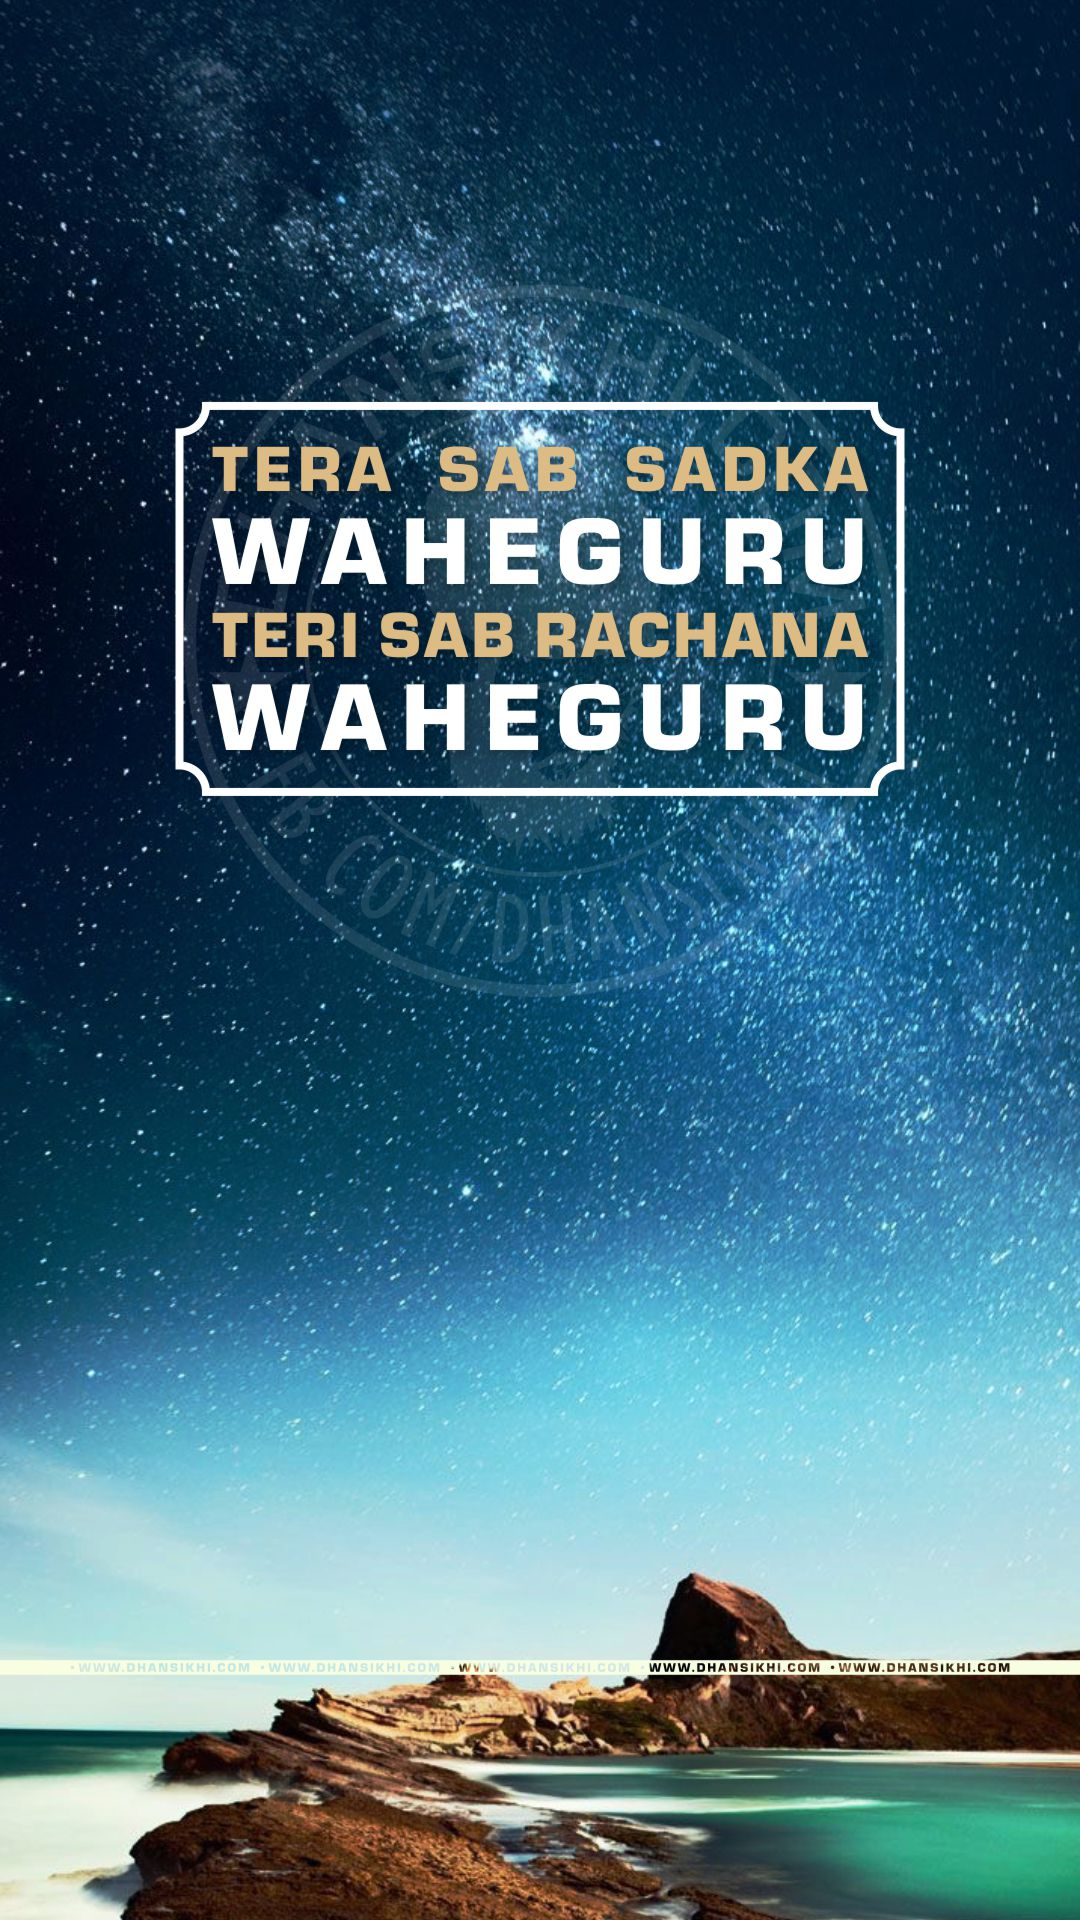 Waheguru Wallpapers For Mobile